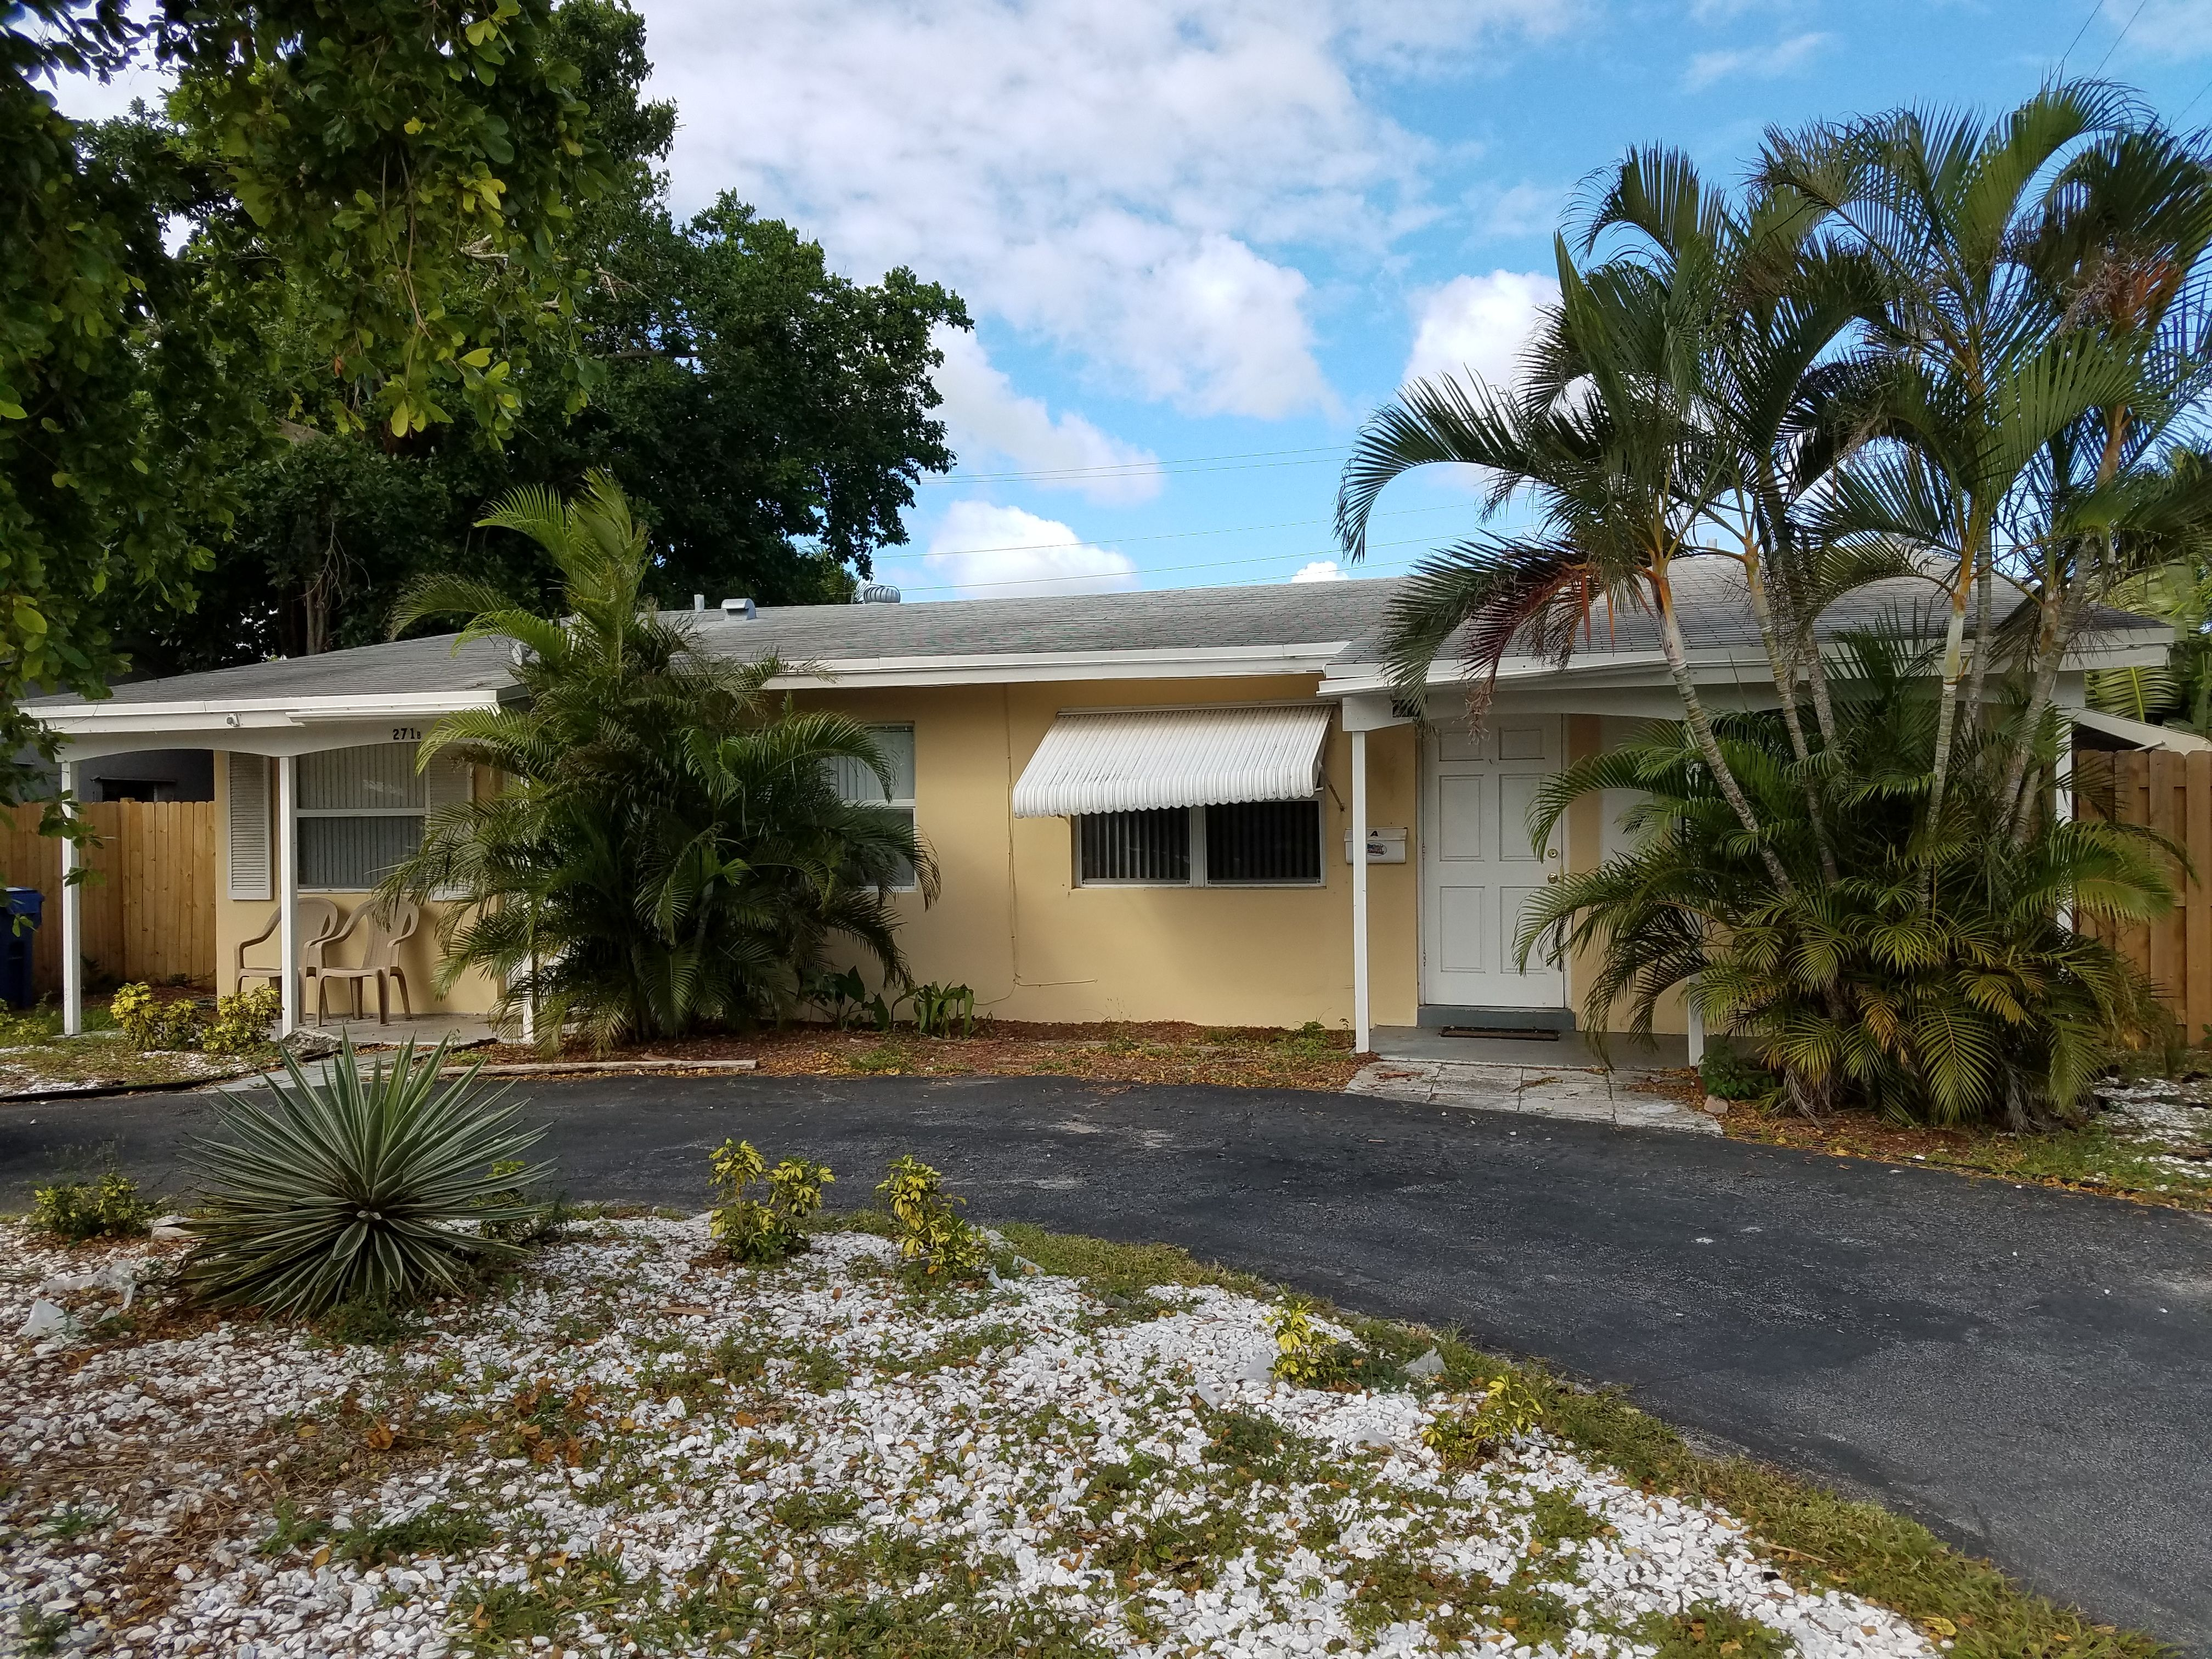 Duplex For Rent In Fort Lauderdale 2/1 With A Big Patio, New AC